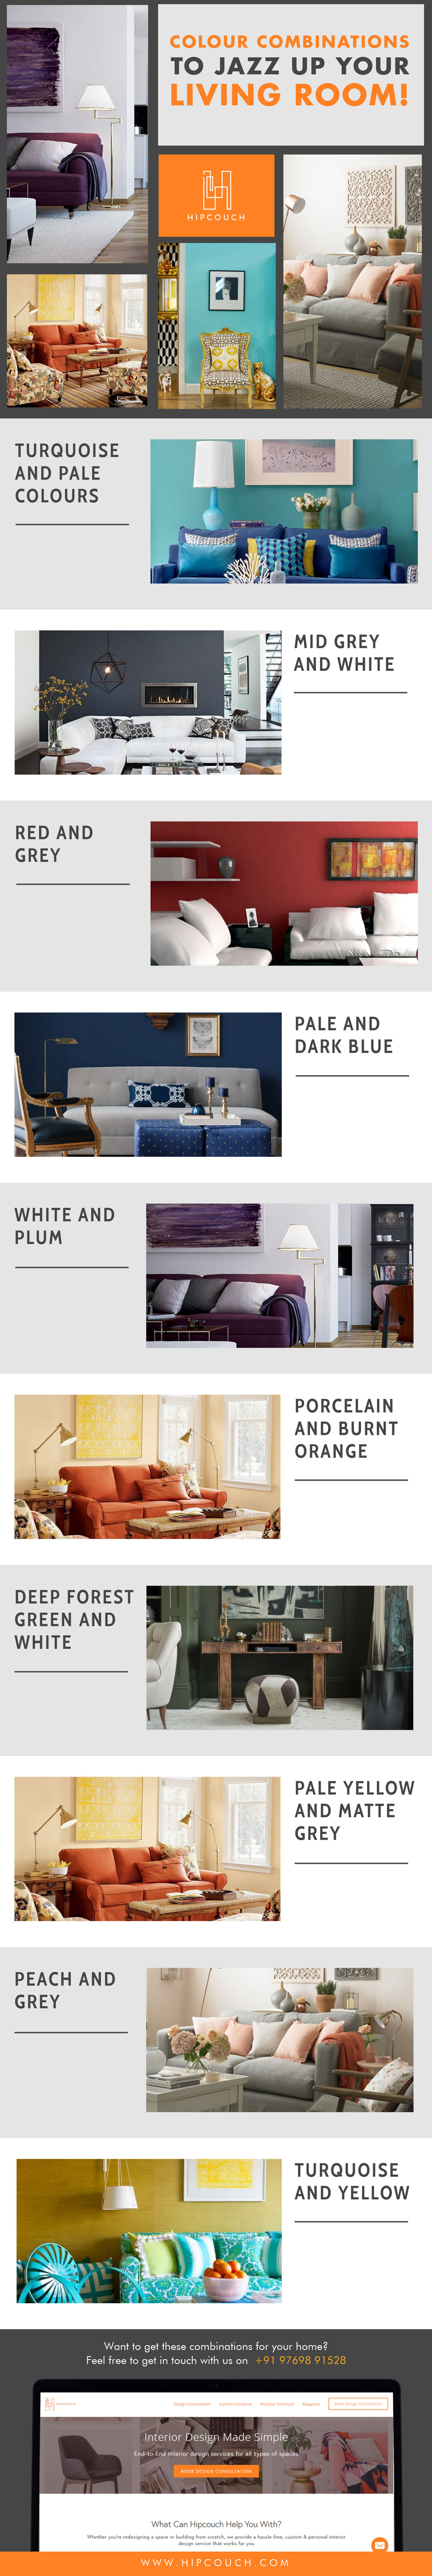 Best Colour Combinations To Jazz Up Your Living Room